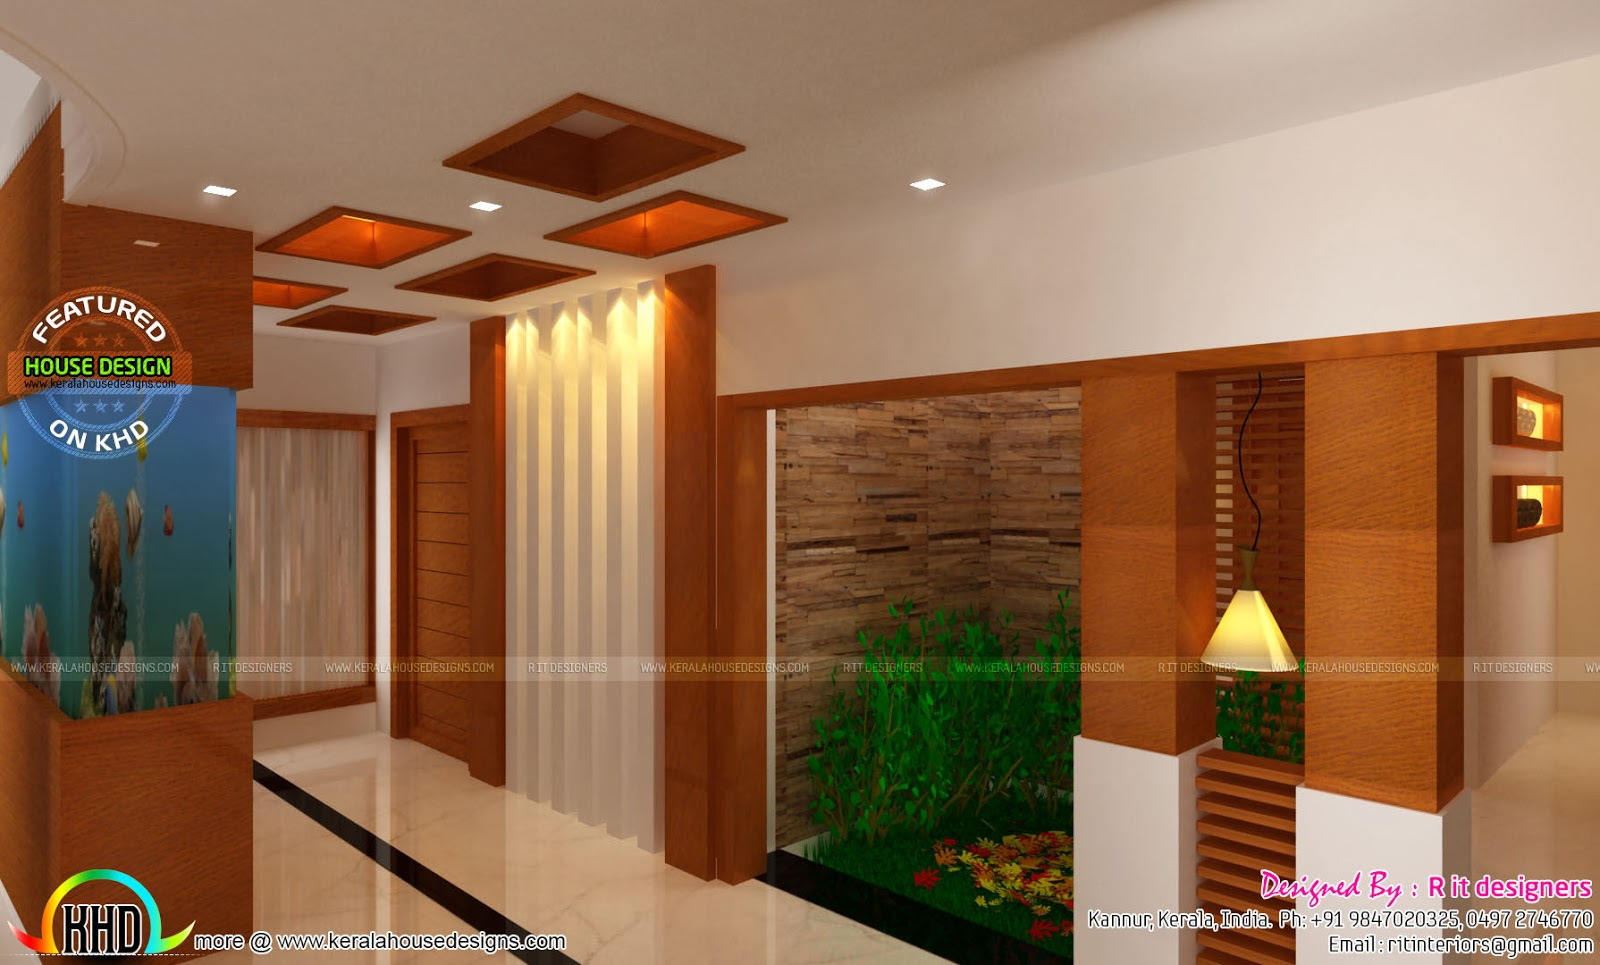 Living Room Interior With Wooden Finish Master Bedroom Courtyard Aquarium Staircase